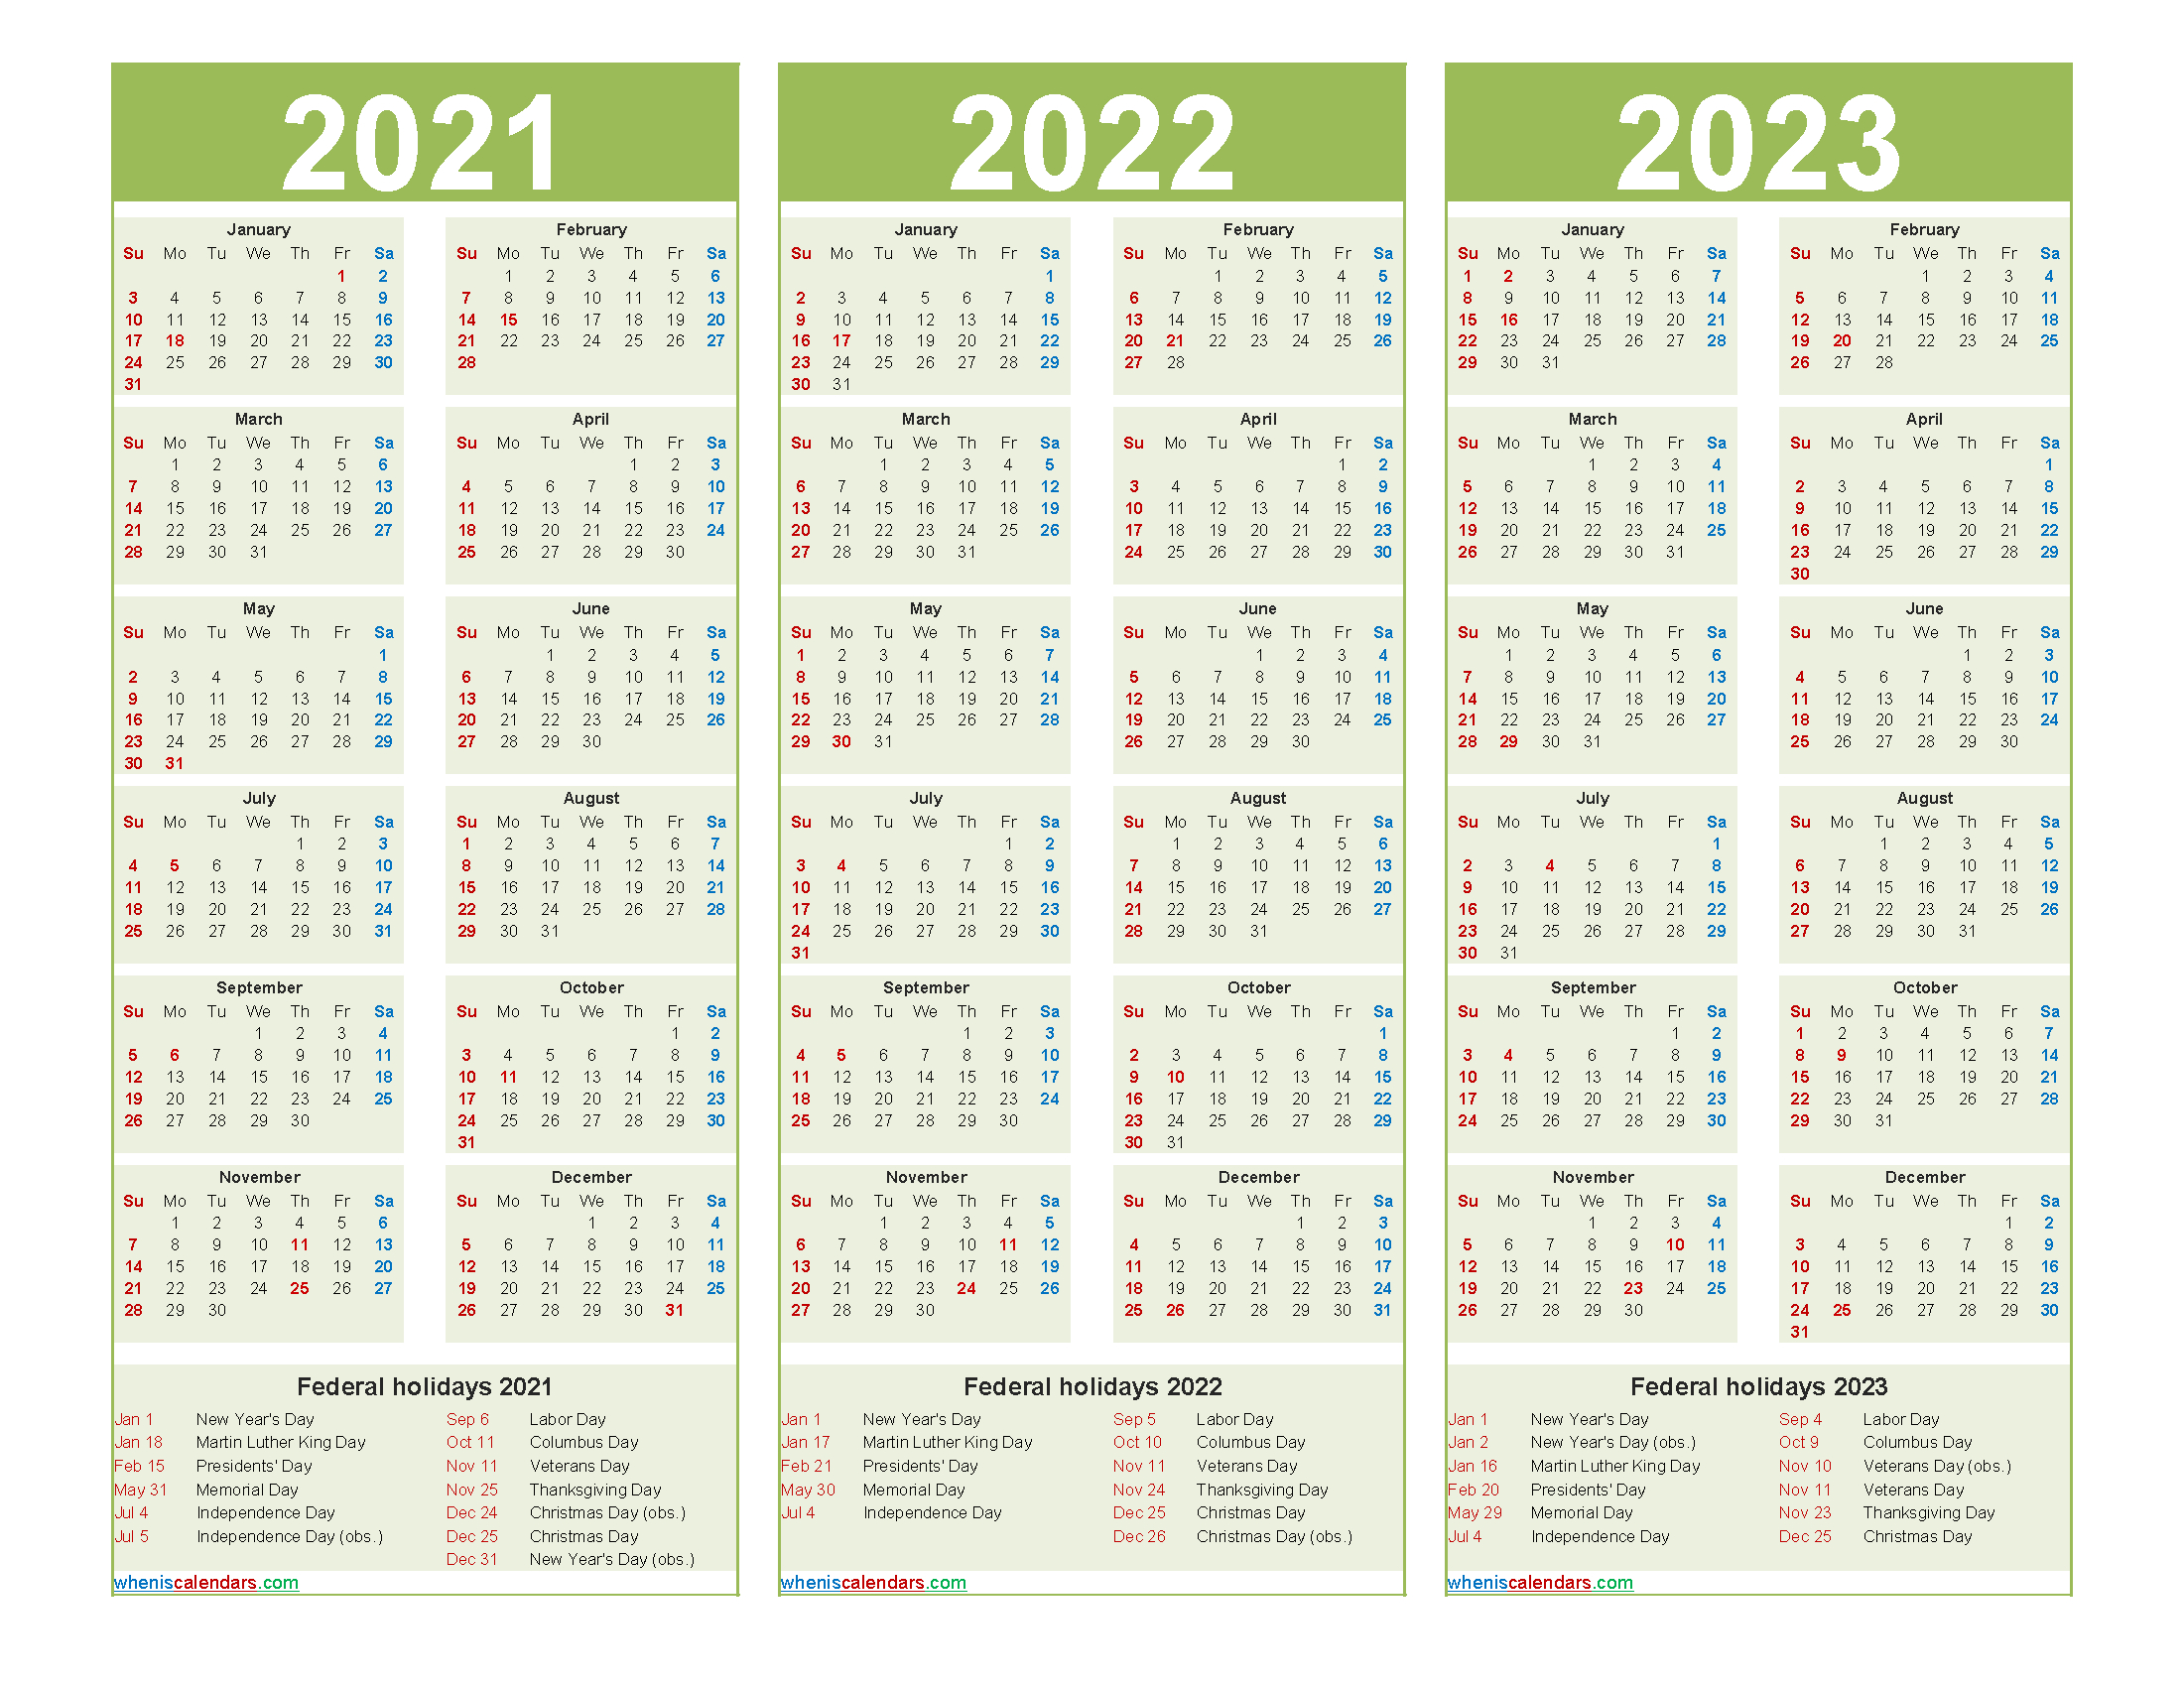 Free 2021 And 2022 And 2023 Calendar With Holidays - Free with regard to Walmart 2022 2023 Fiscal Calendar